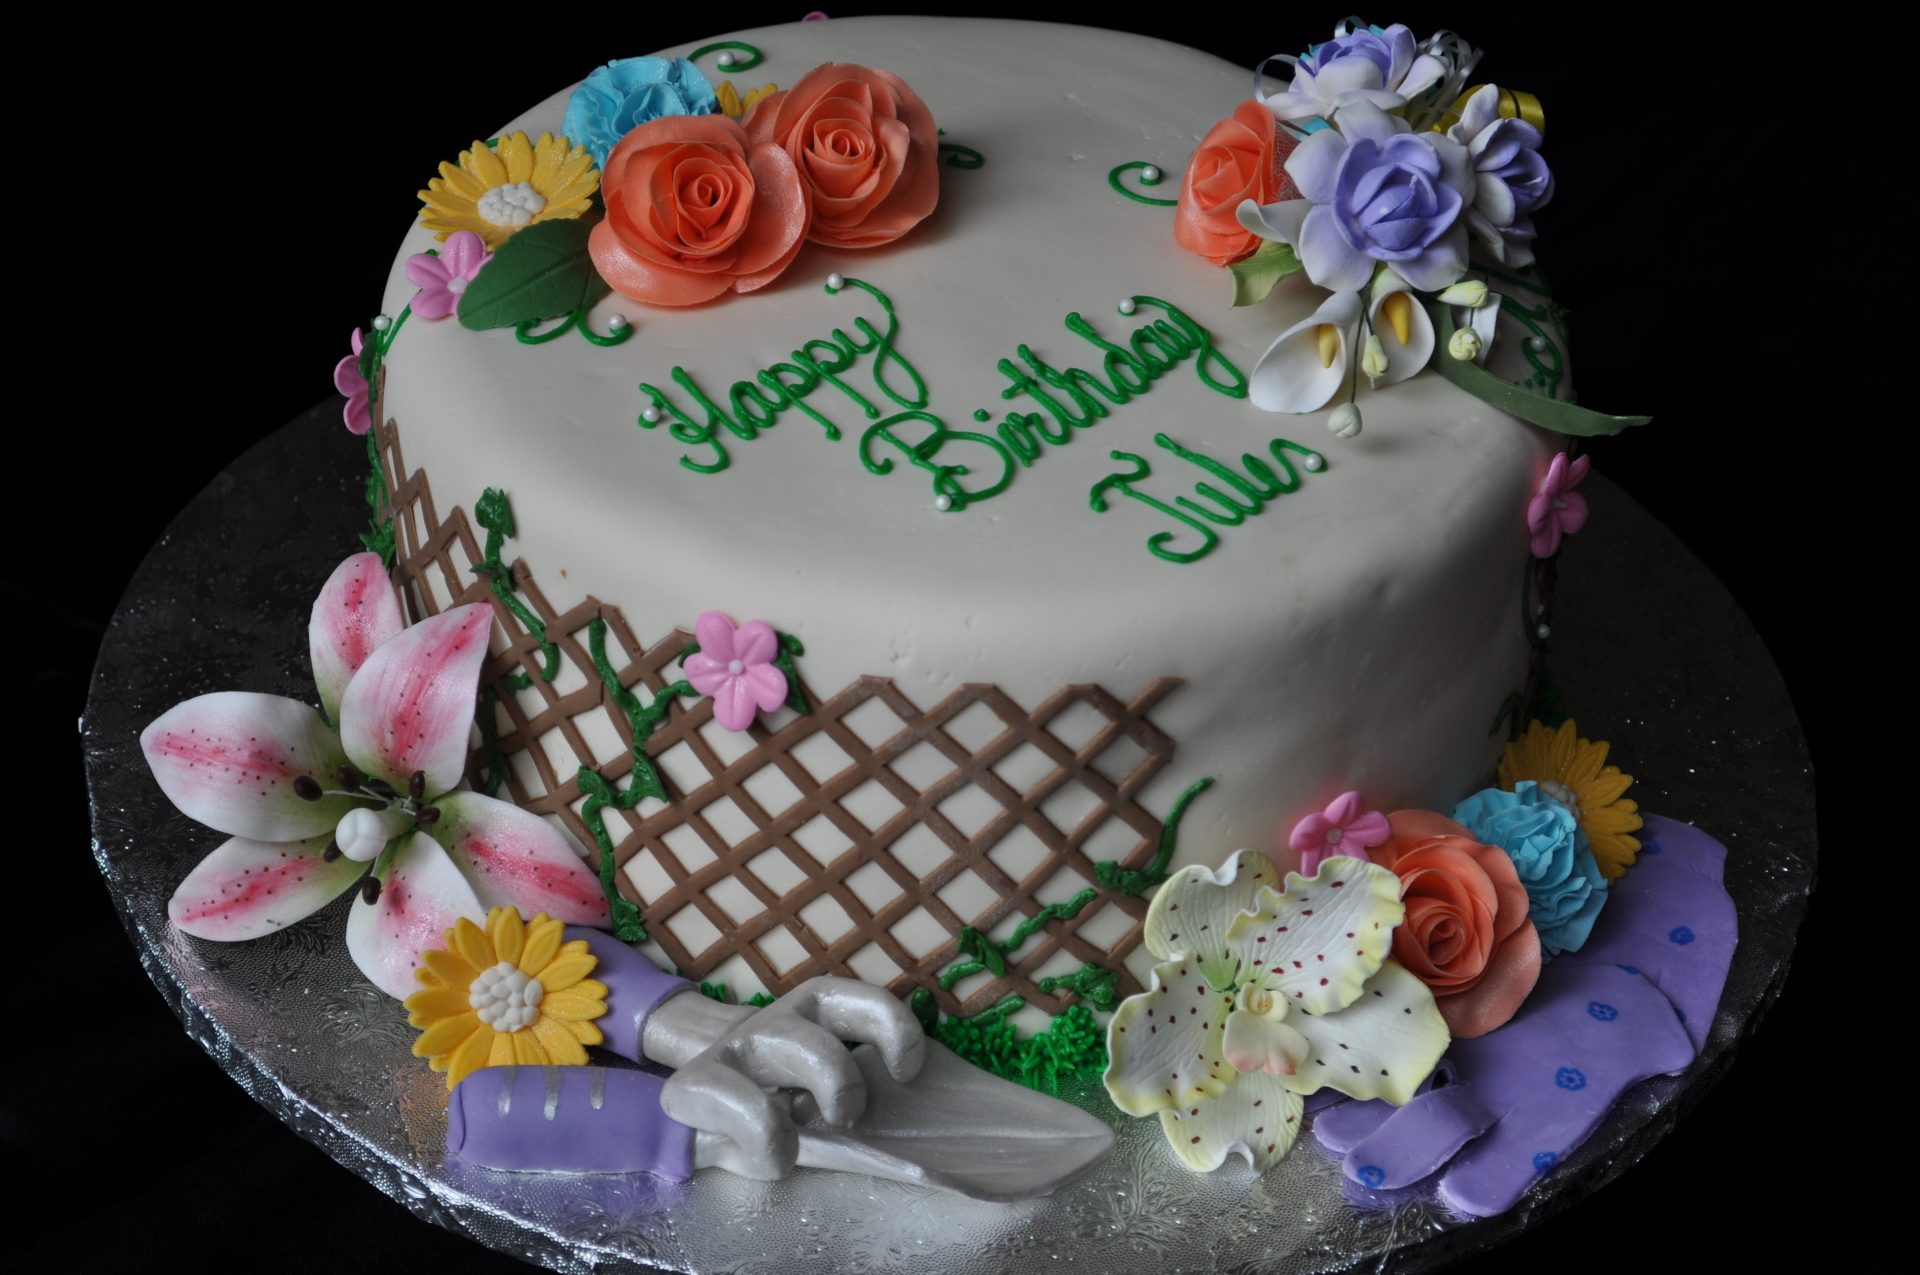 Assorted Sugar Flowers and lattice fondant cake